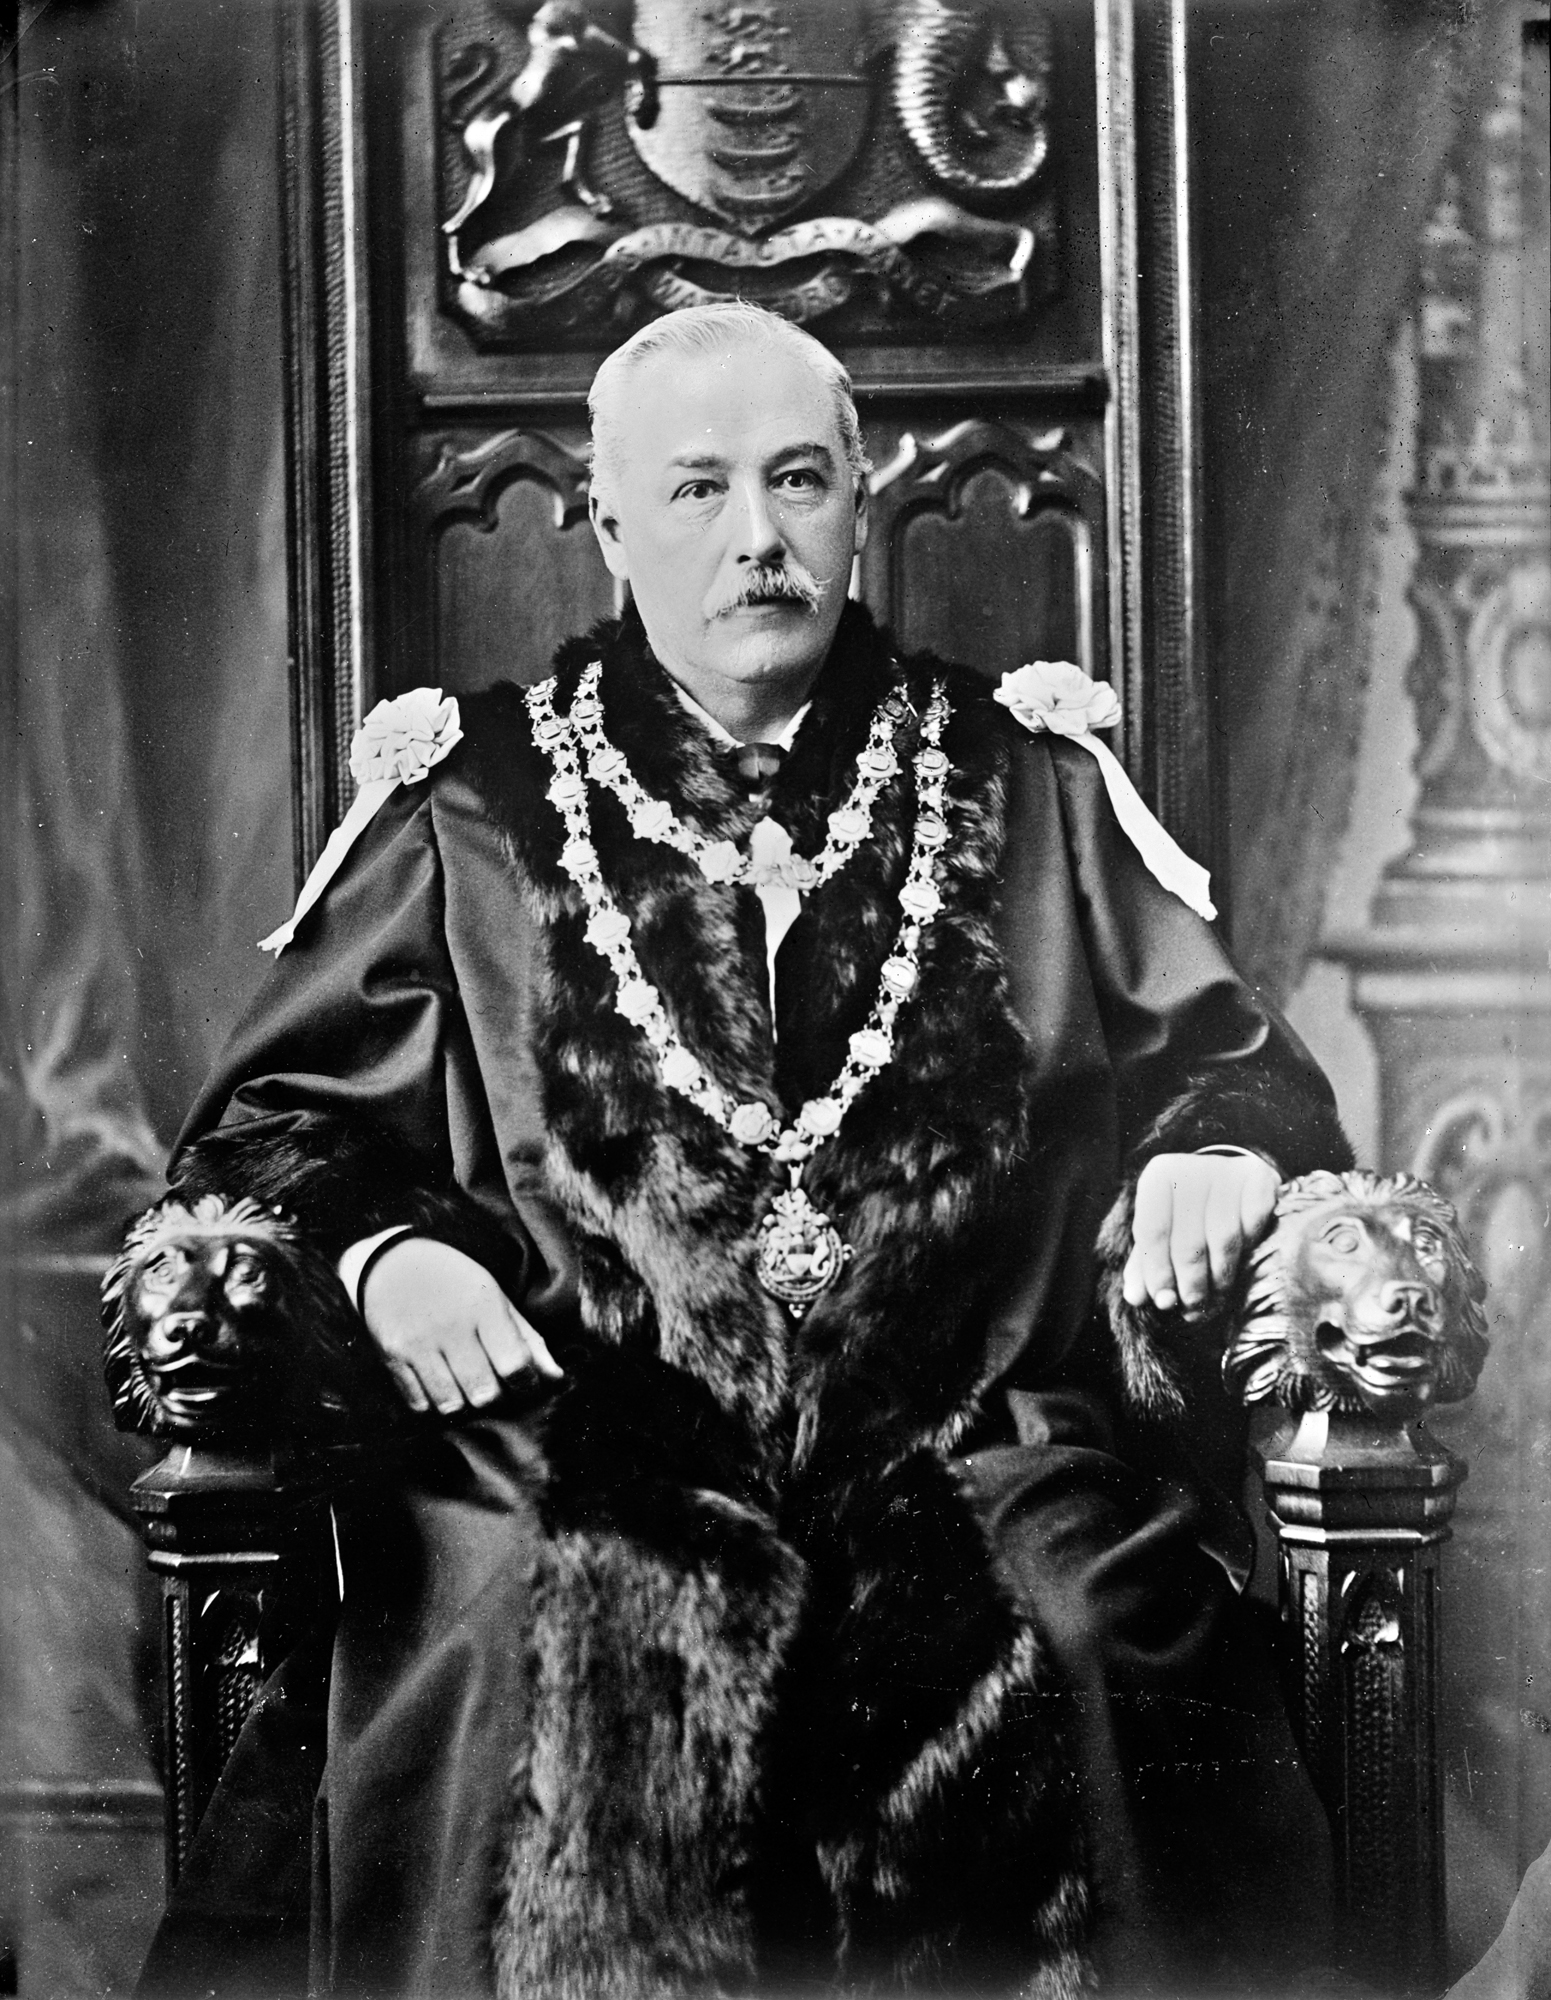 A distinguished gentleman in robes and chain of office sitting on a throne (of sorts)